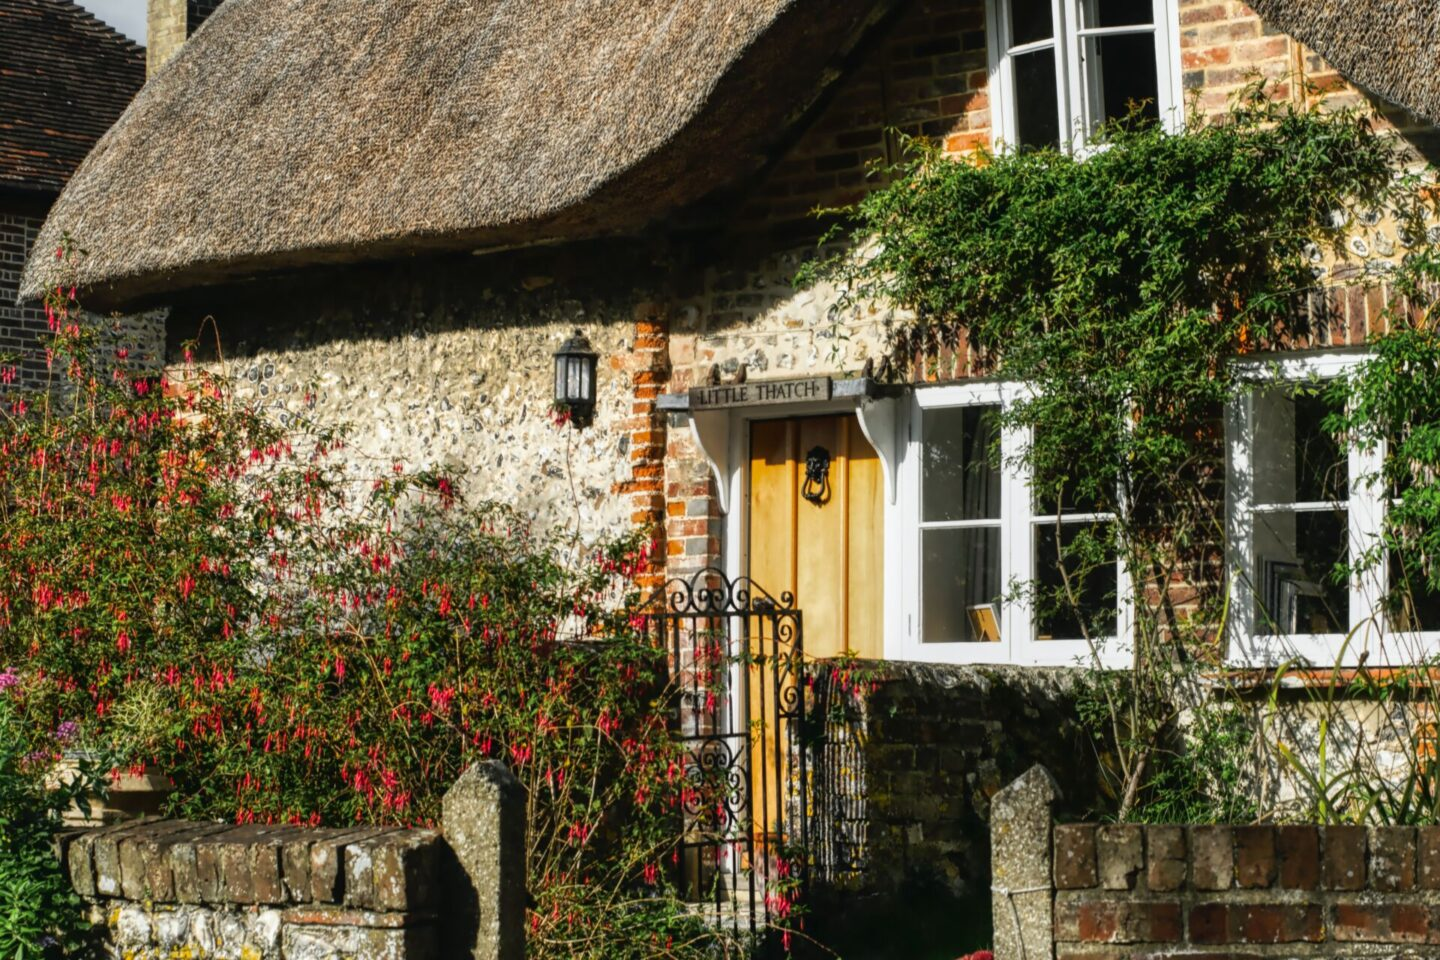 Buying your first home. If it was a lovely quaint cottage that no first time buyer could really afford.